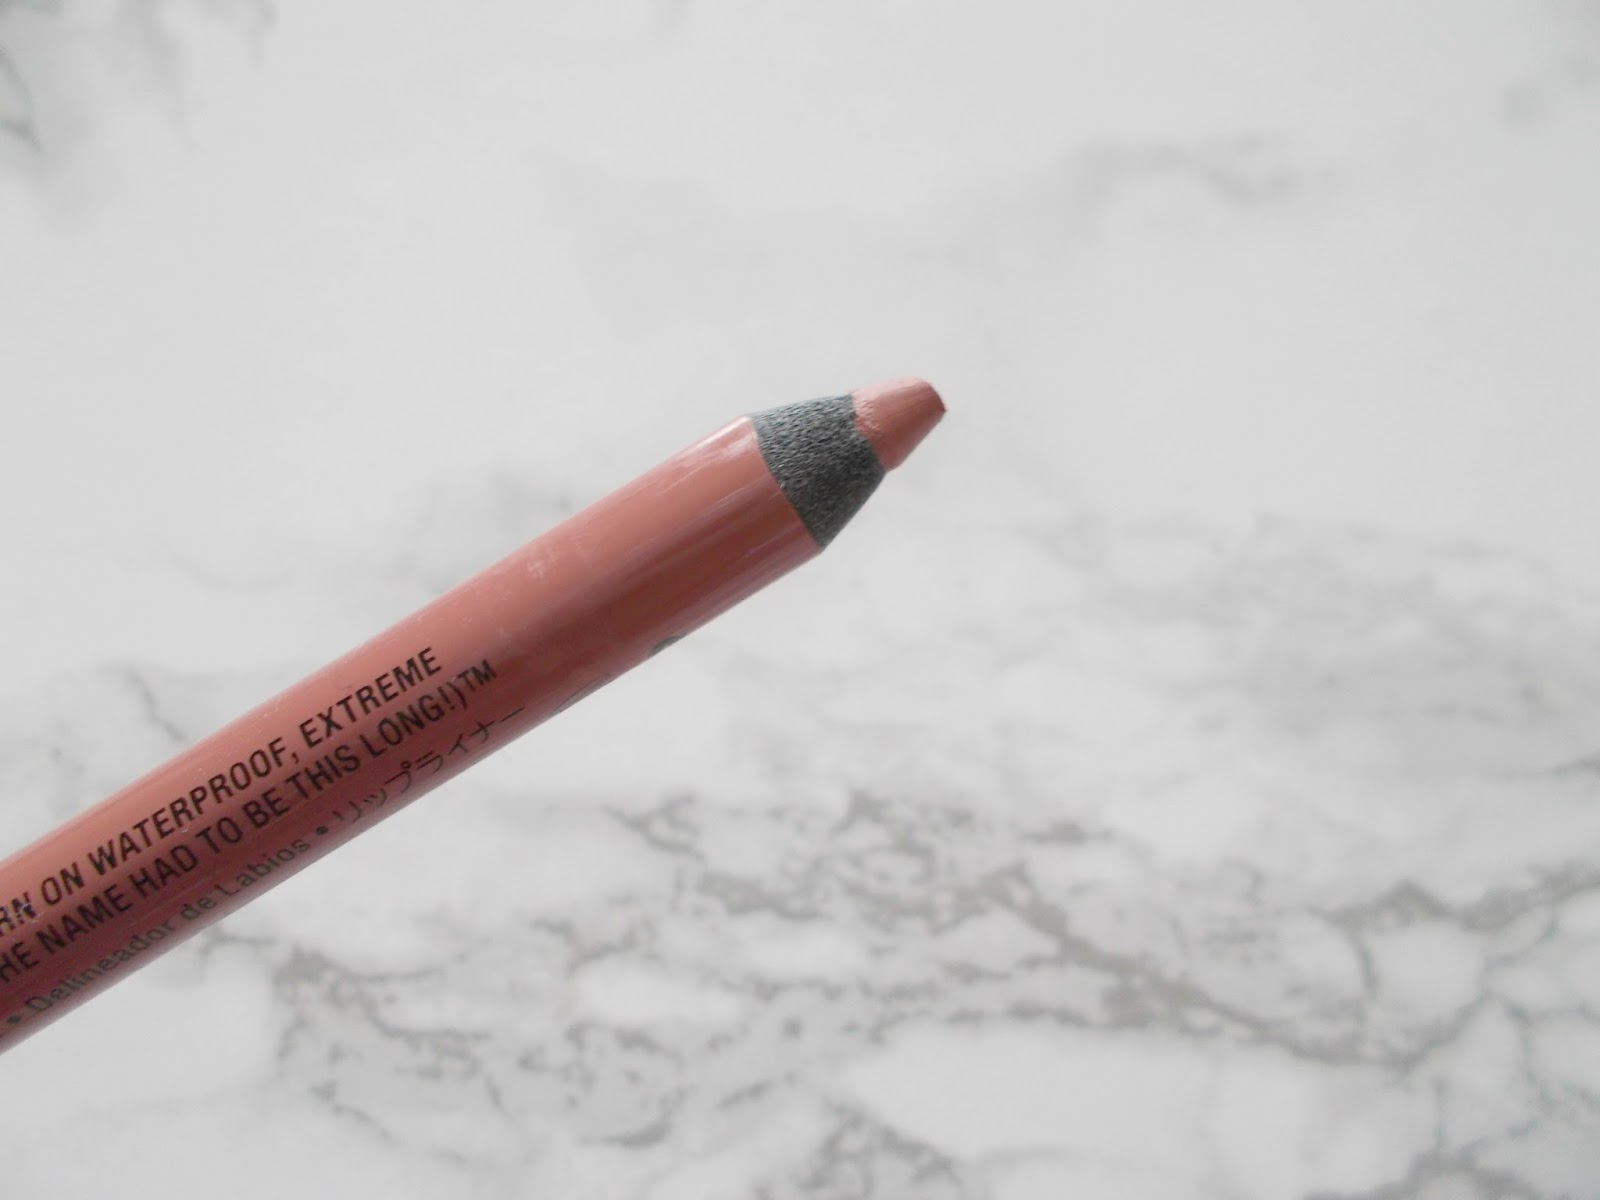 nyx nude suede shoes lip liner review